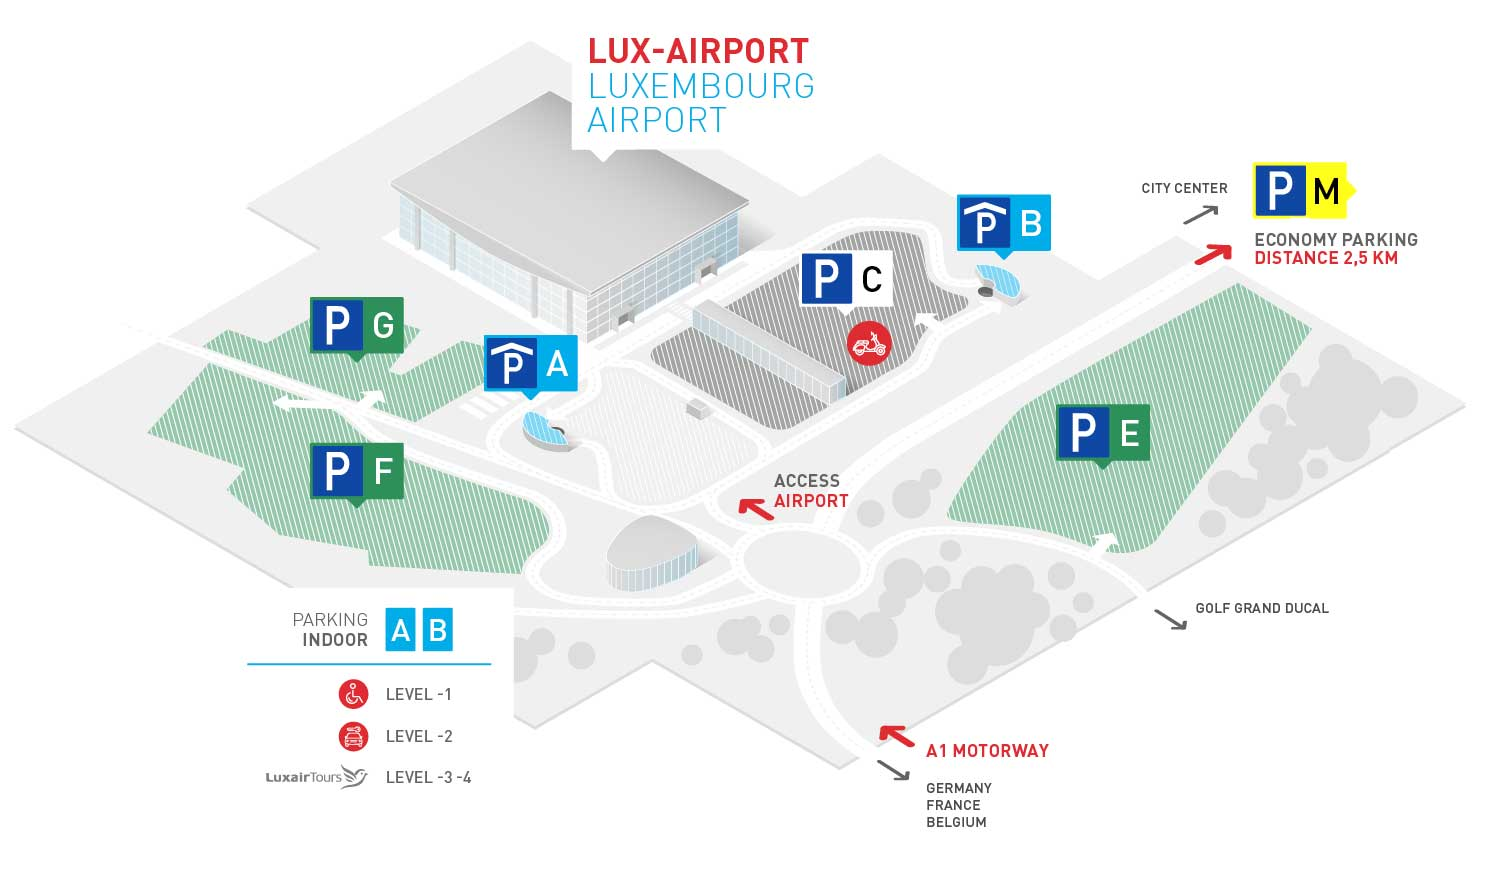 Parking luxembourg airport luxembourg airport for Short term parking at lax